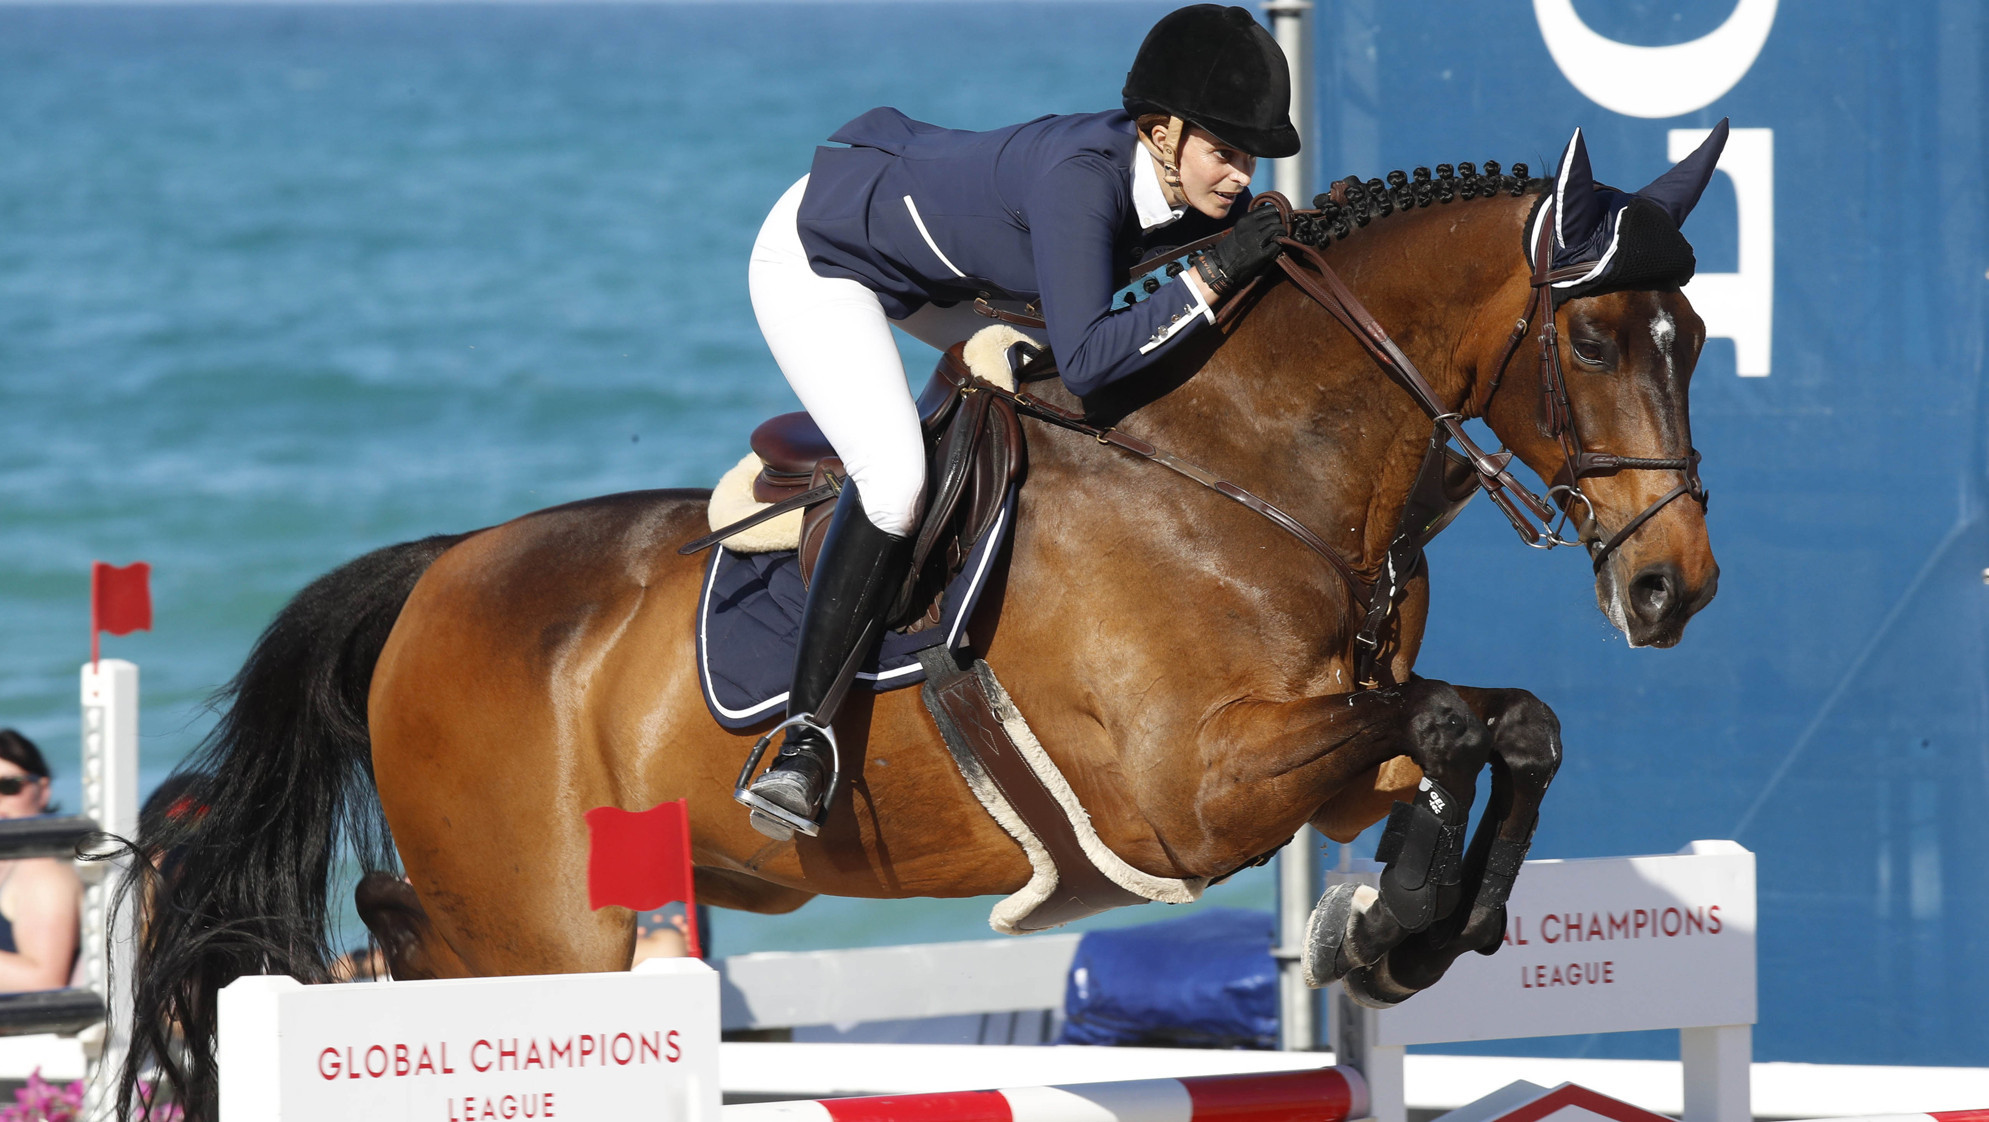 The opening class of the Global Champions League team competition has also taken place ©GCL/Stefano Grasso